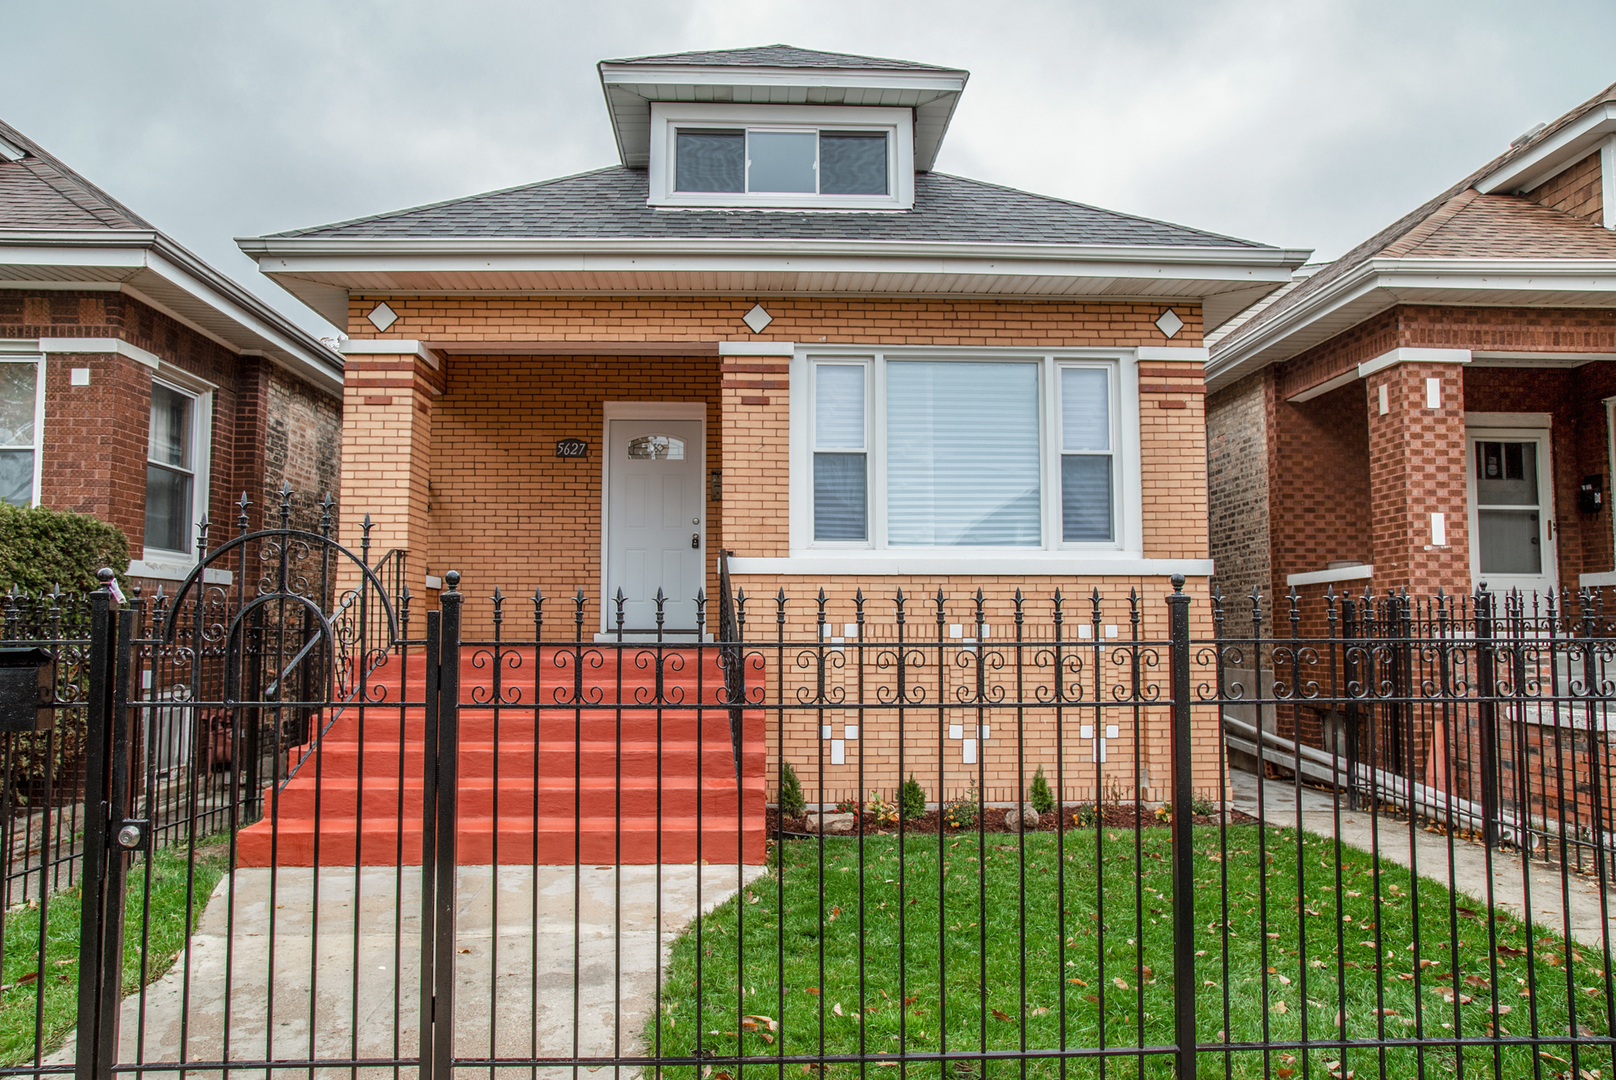 5627 SOUTH SACRAMENTO AVENUE, CHICAGO, IL 60629